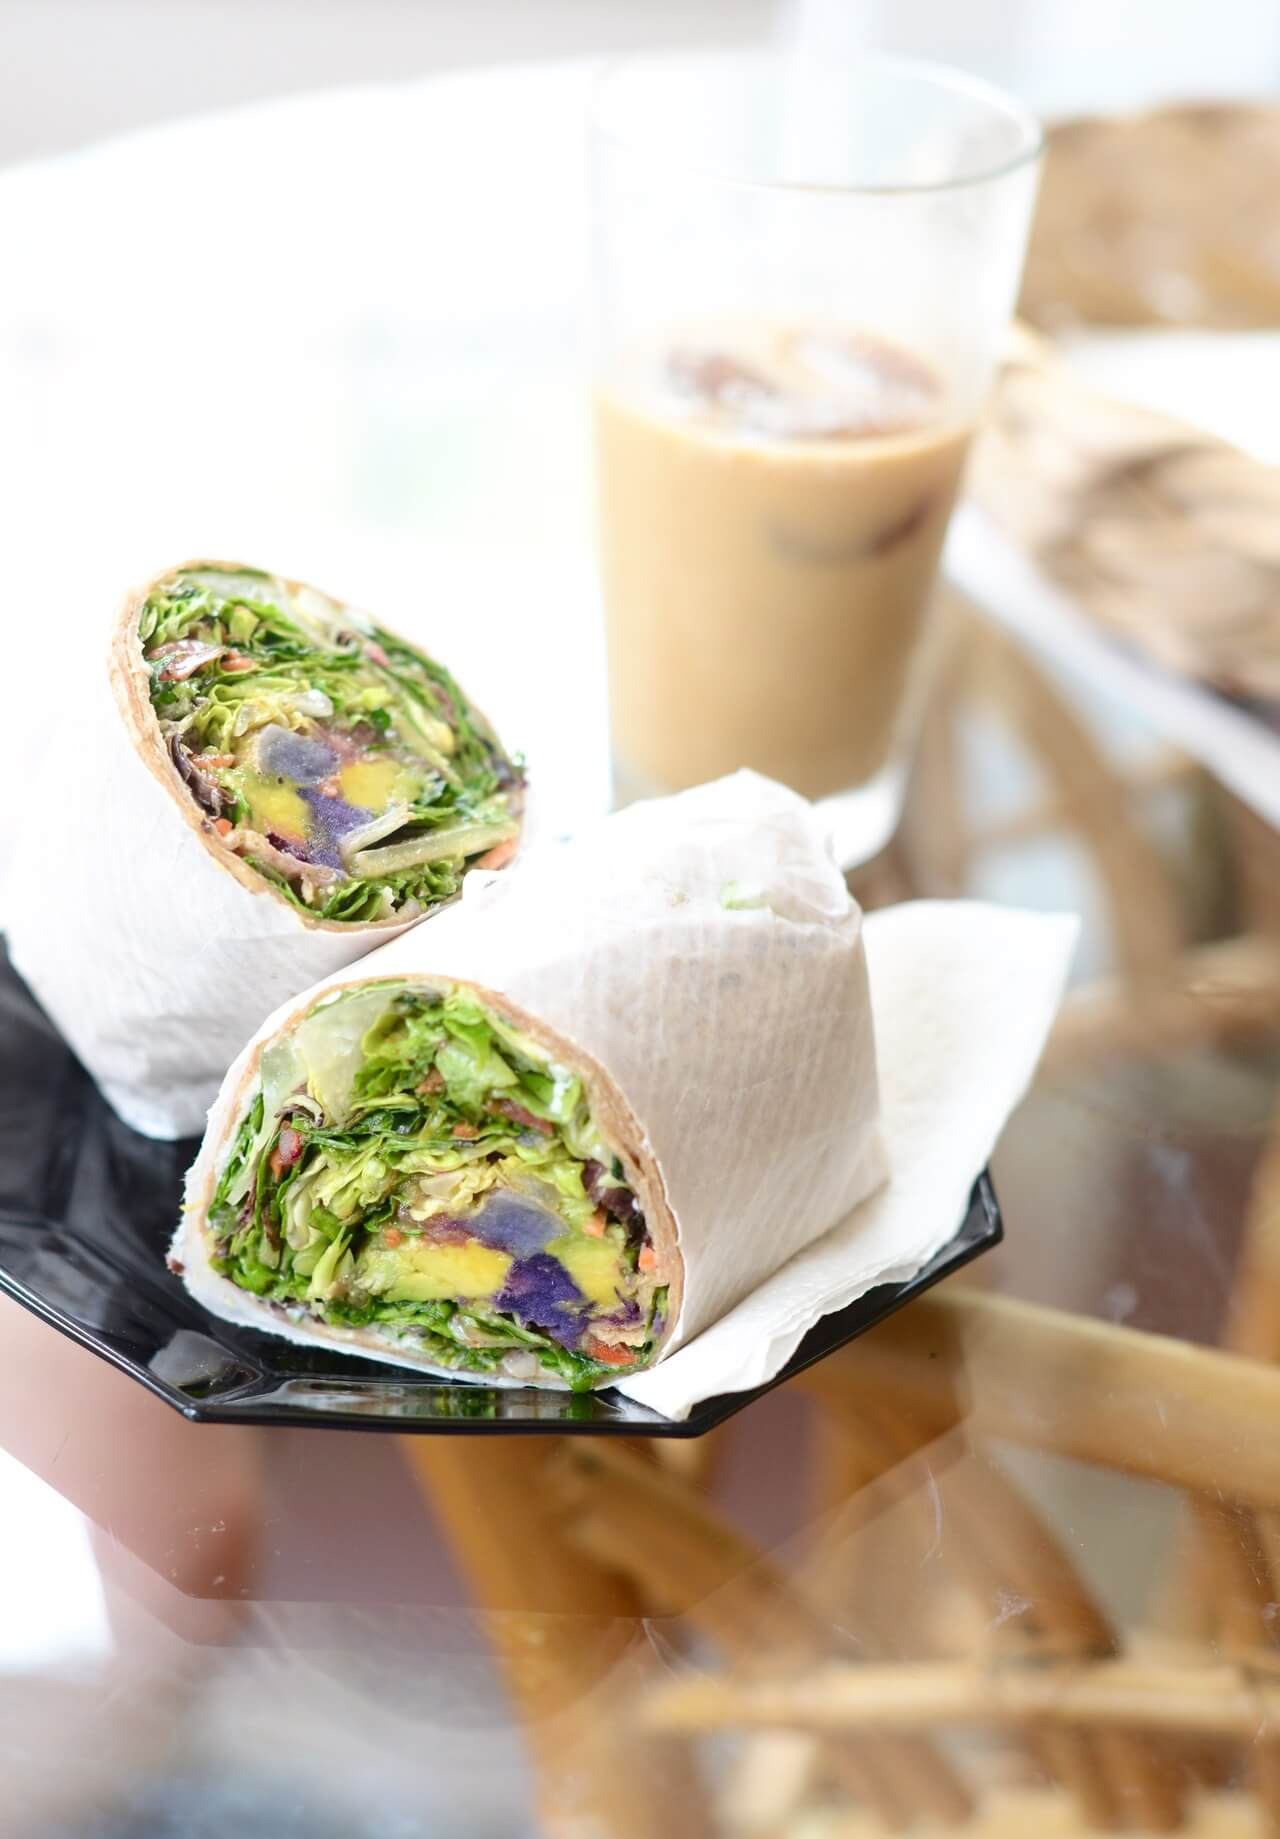 healthy lunch options on maui: veggie wrap at bamboo fresh in lahaina